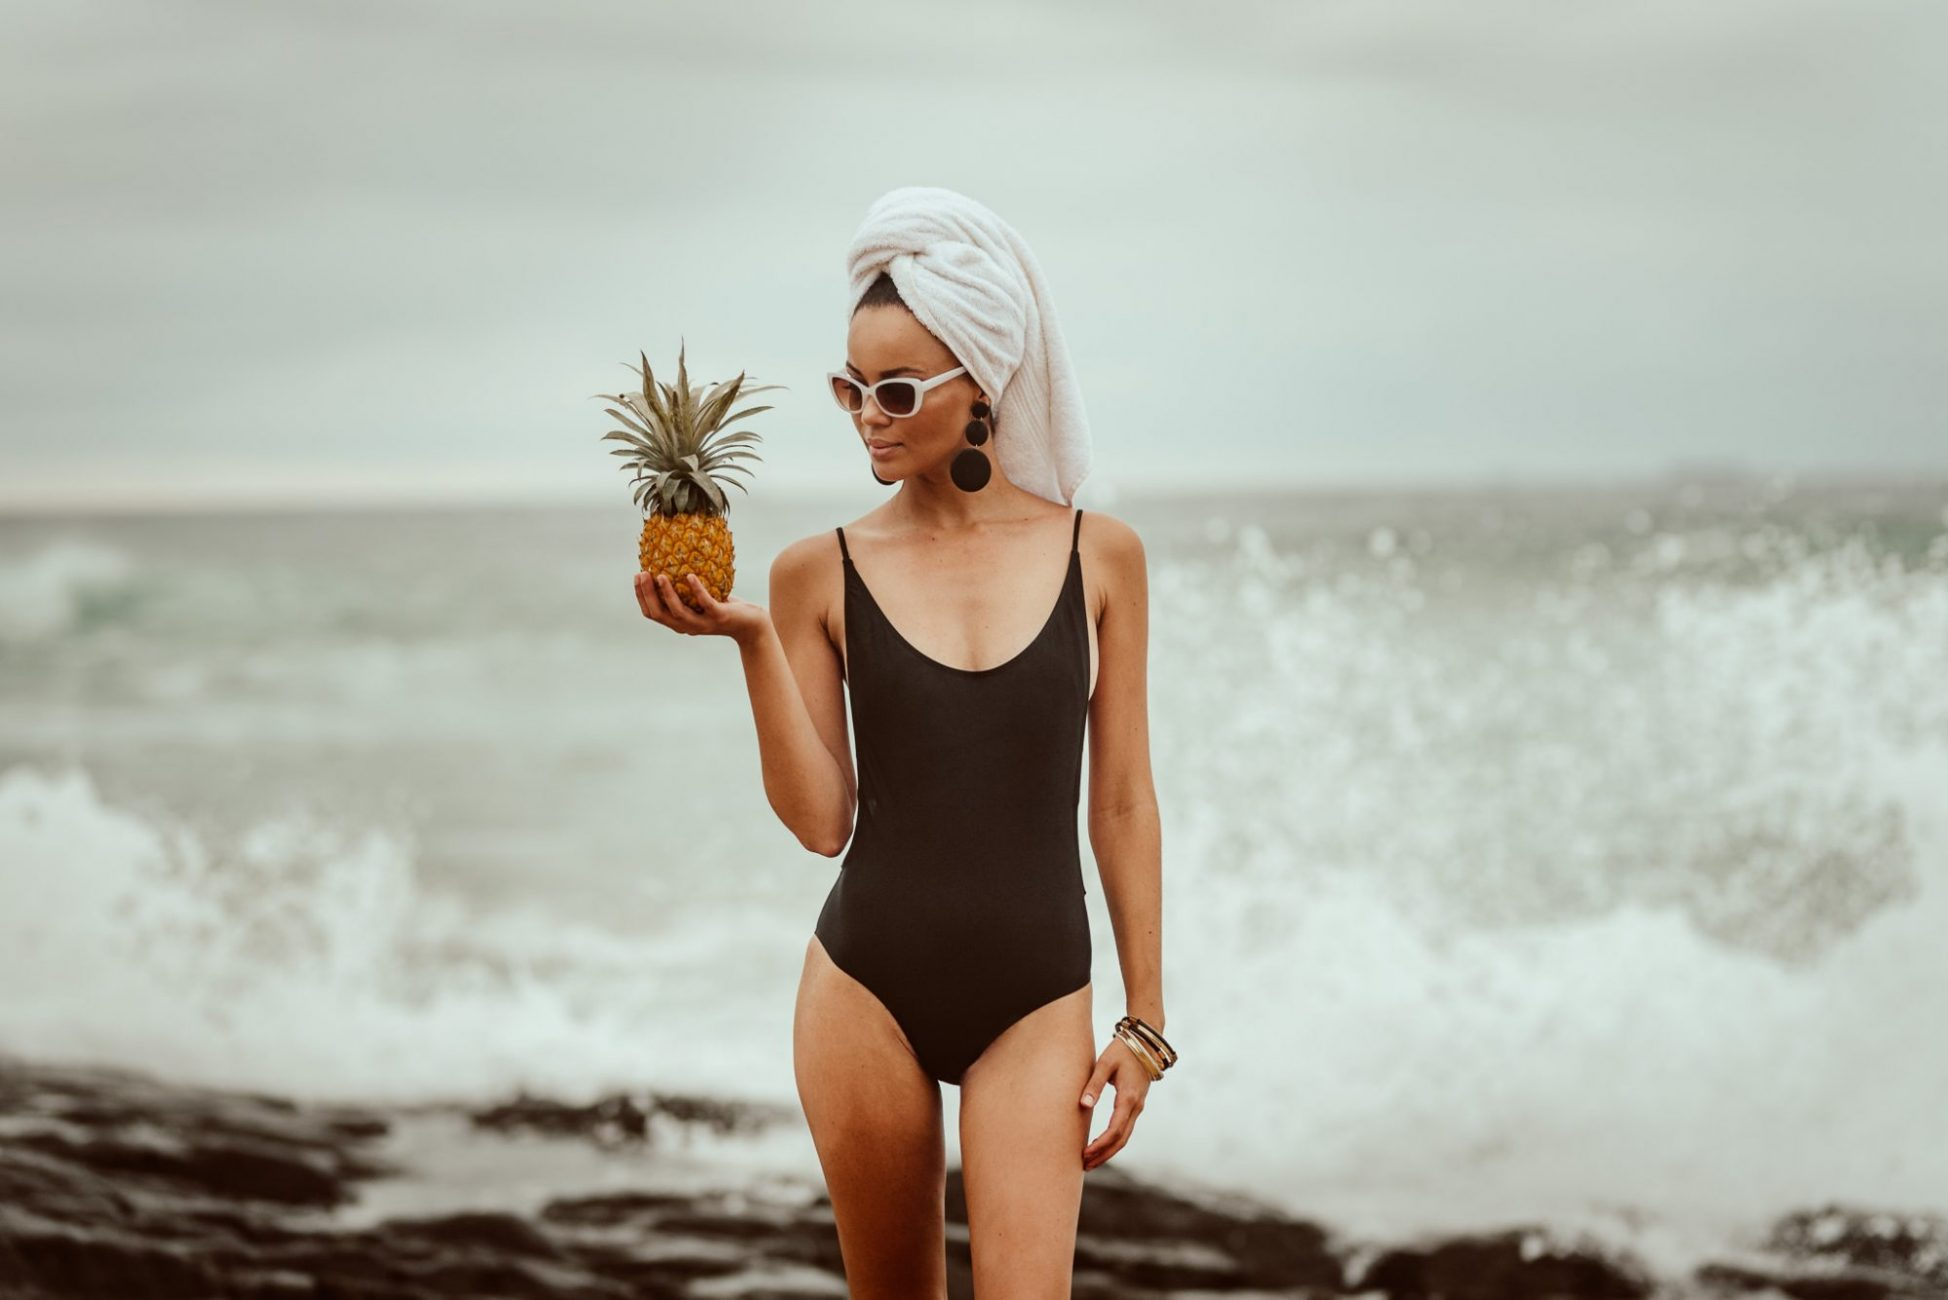 retro_swimwear_model_beach_charne_cr8tiveduo_capetownlifestylephotographer_capetownphotographer_pineapple_towel_crushing_wave